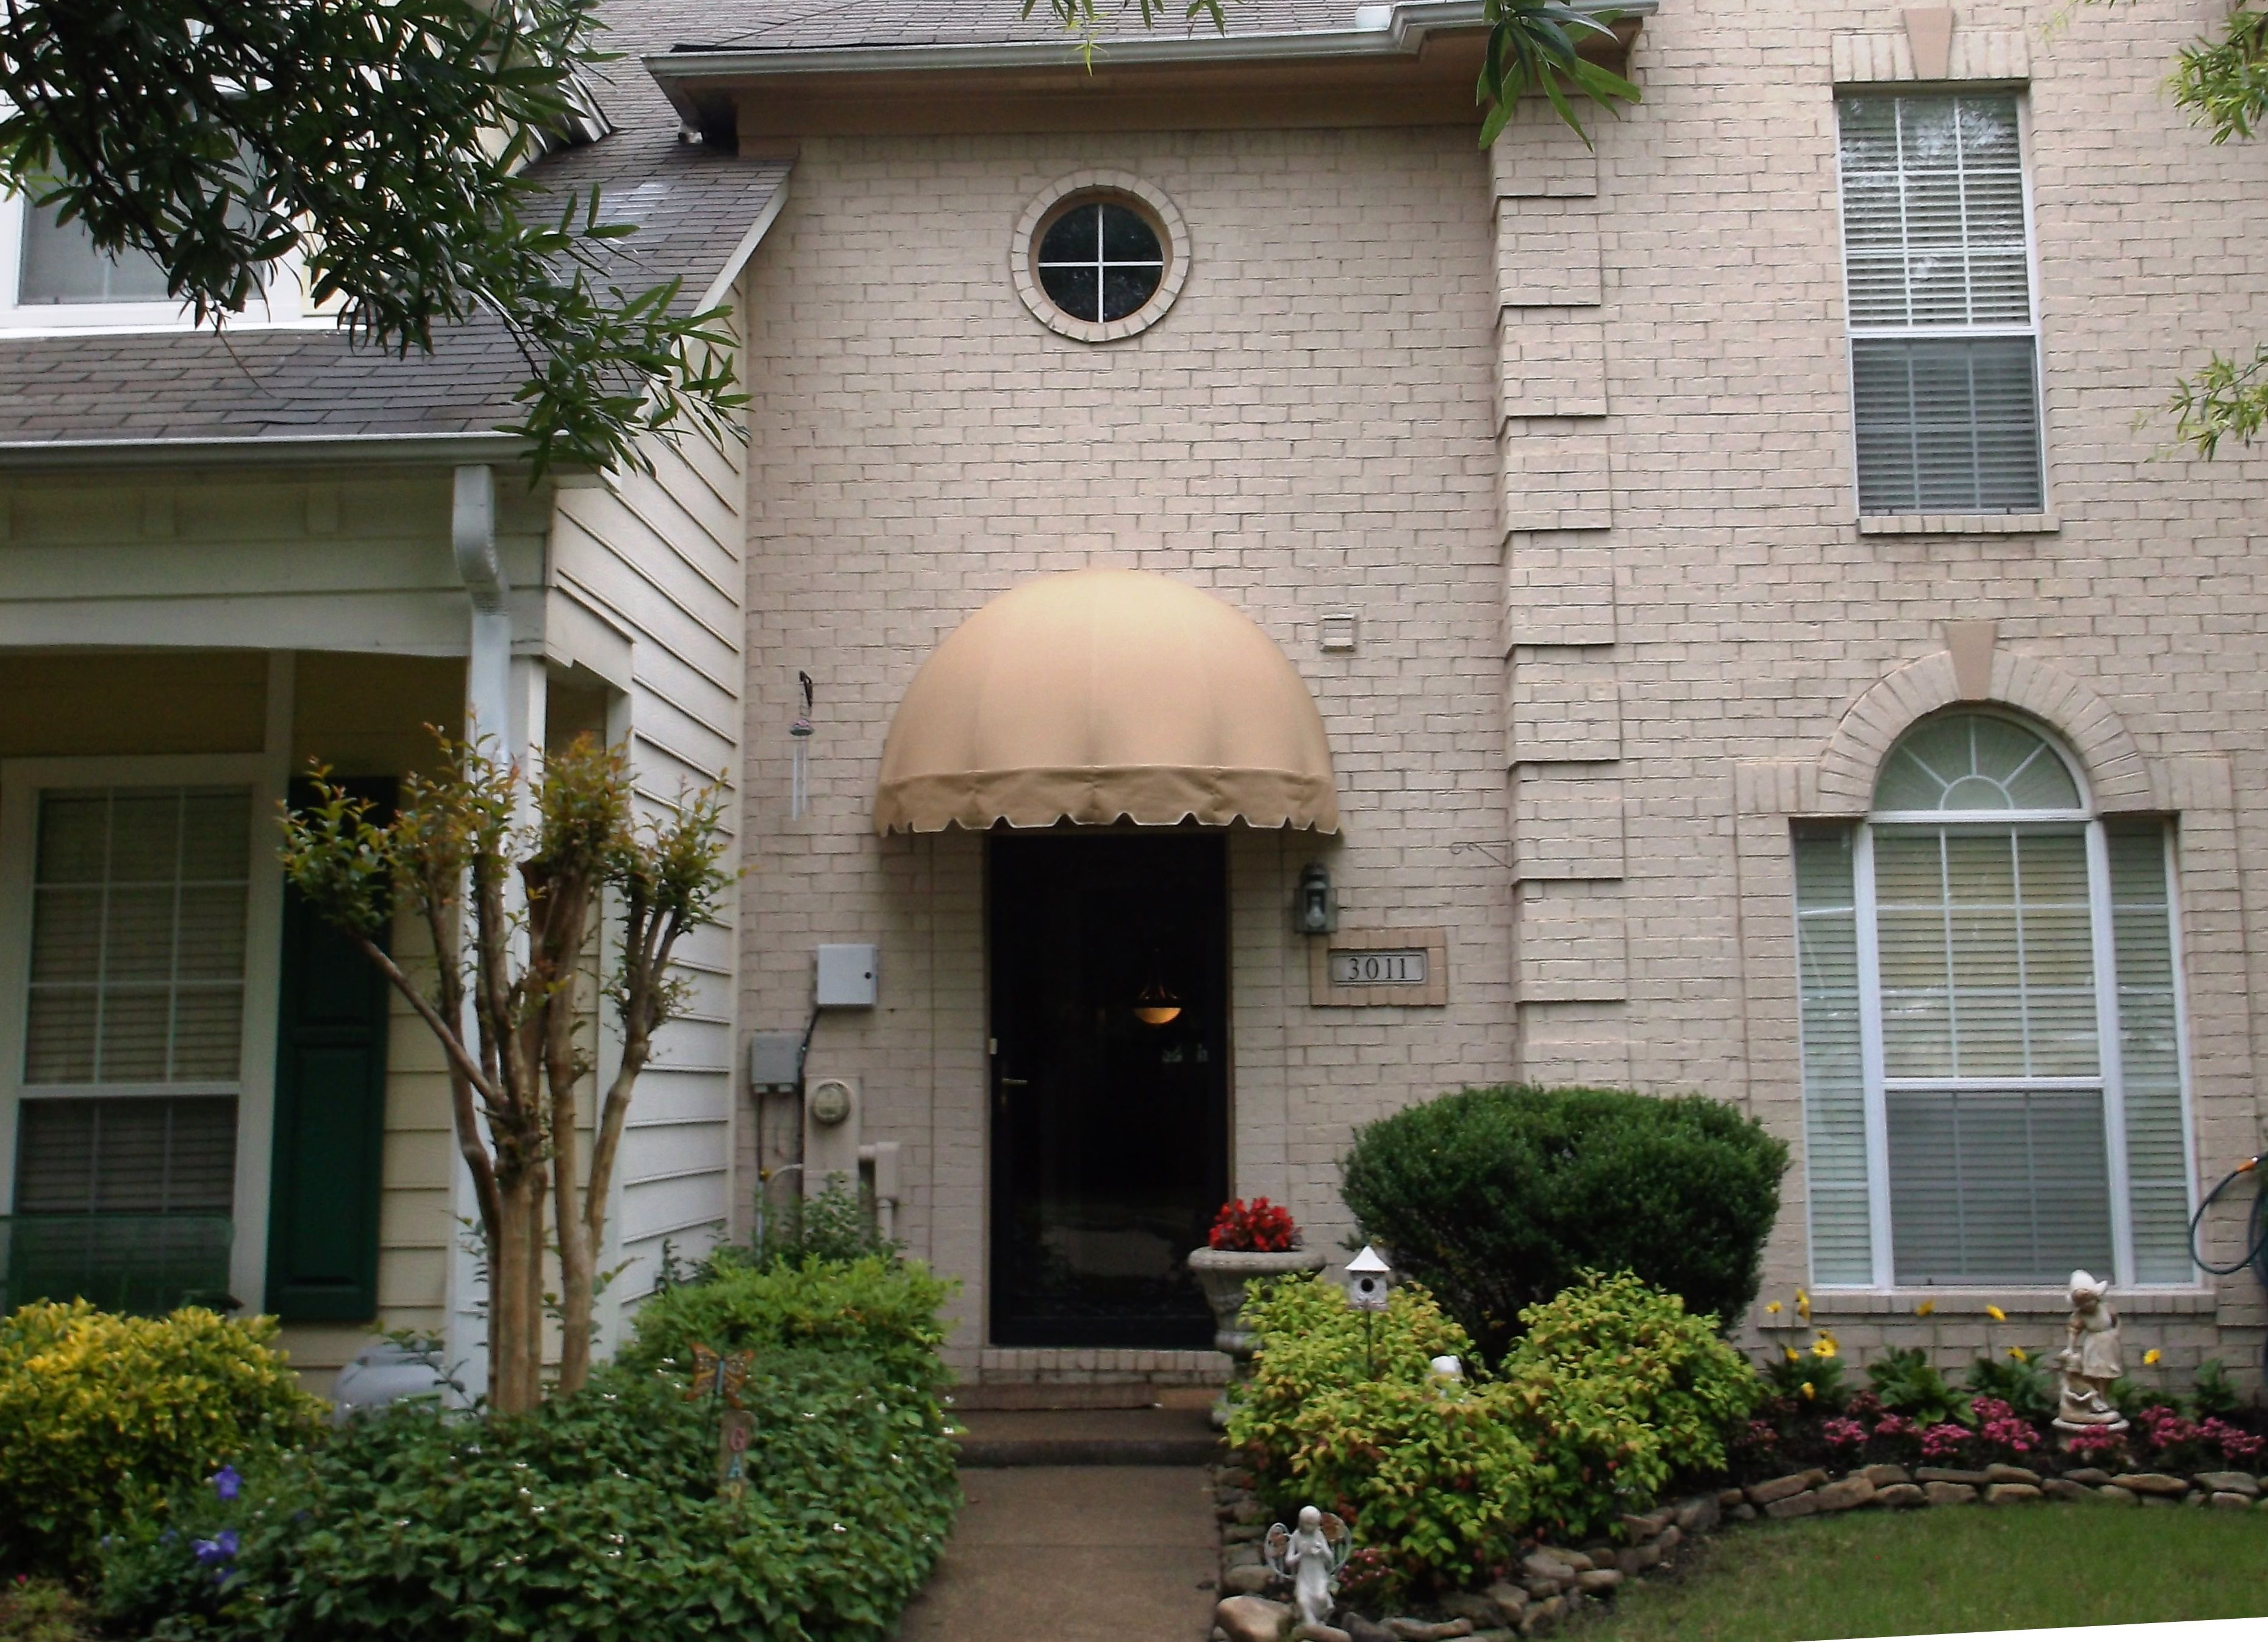 A Dome Awning Over Your Door Is Great Added Element To